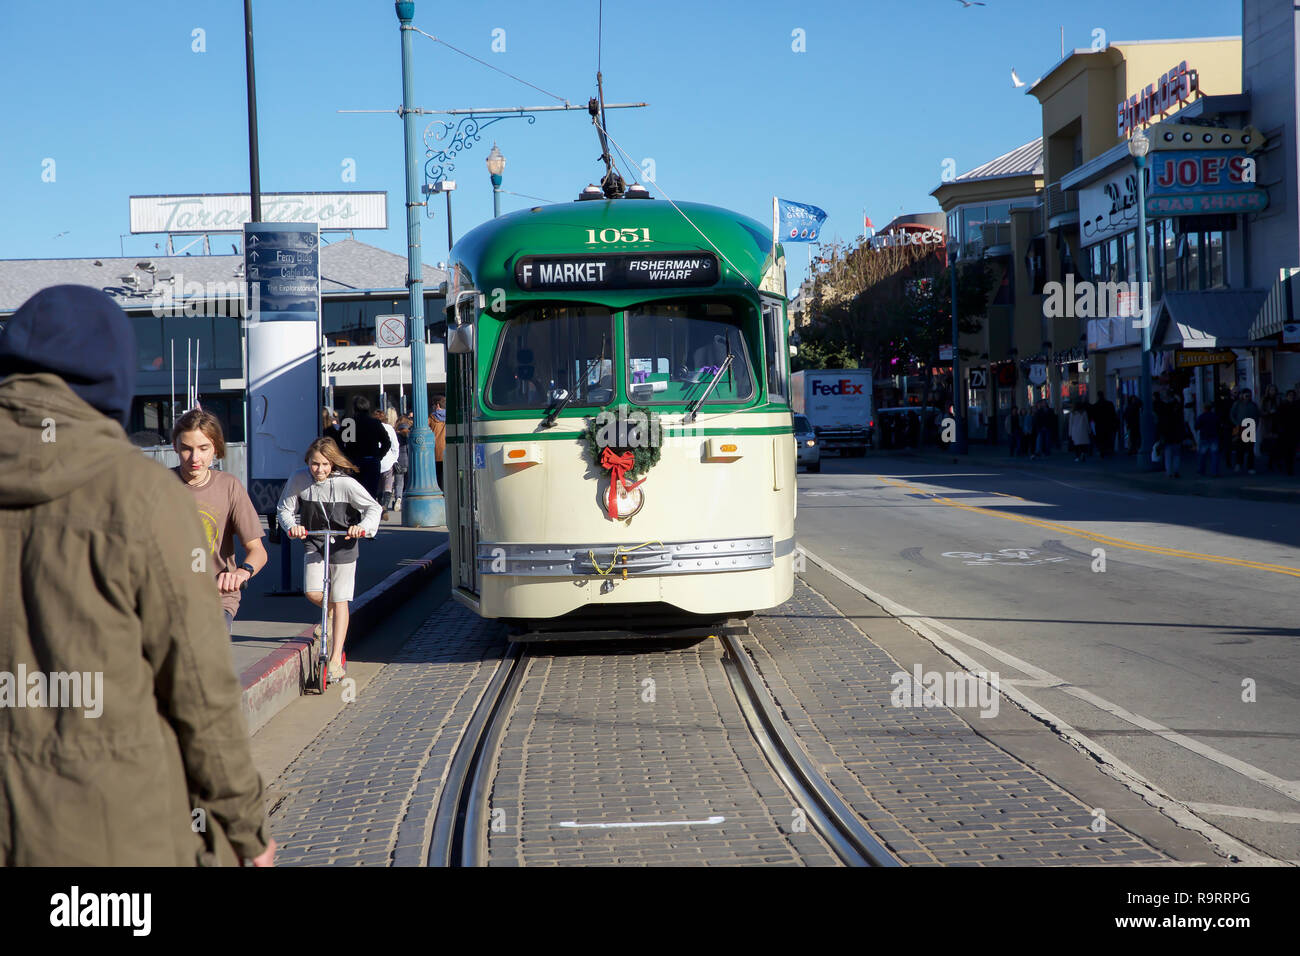 San Francisco, USA. 27th Dec, 2018. Tram in San Francisco. Credit: Keith Larby/Alamy Live News - Stock Image